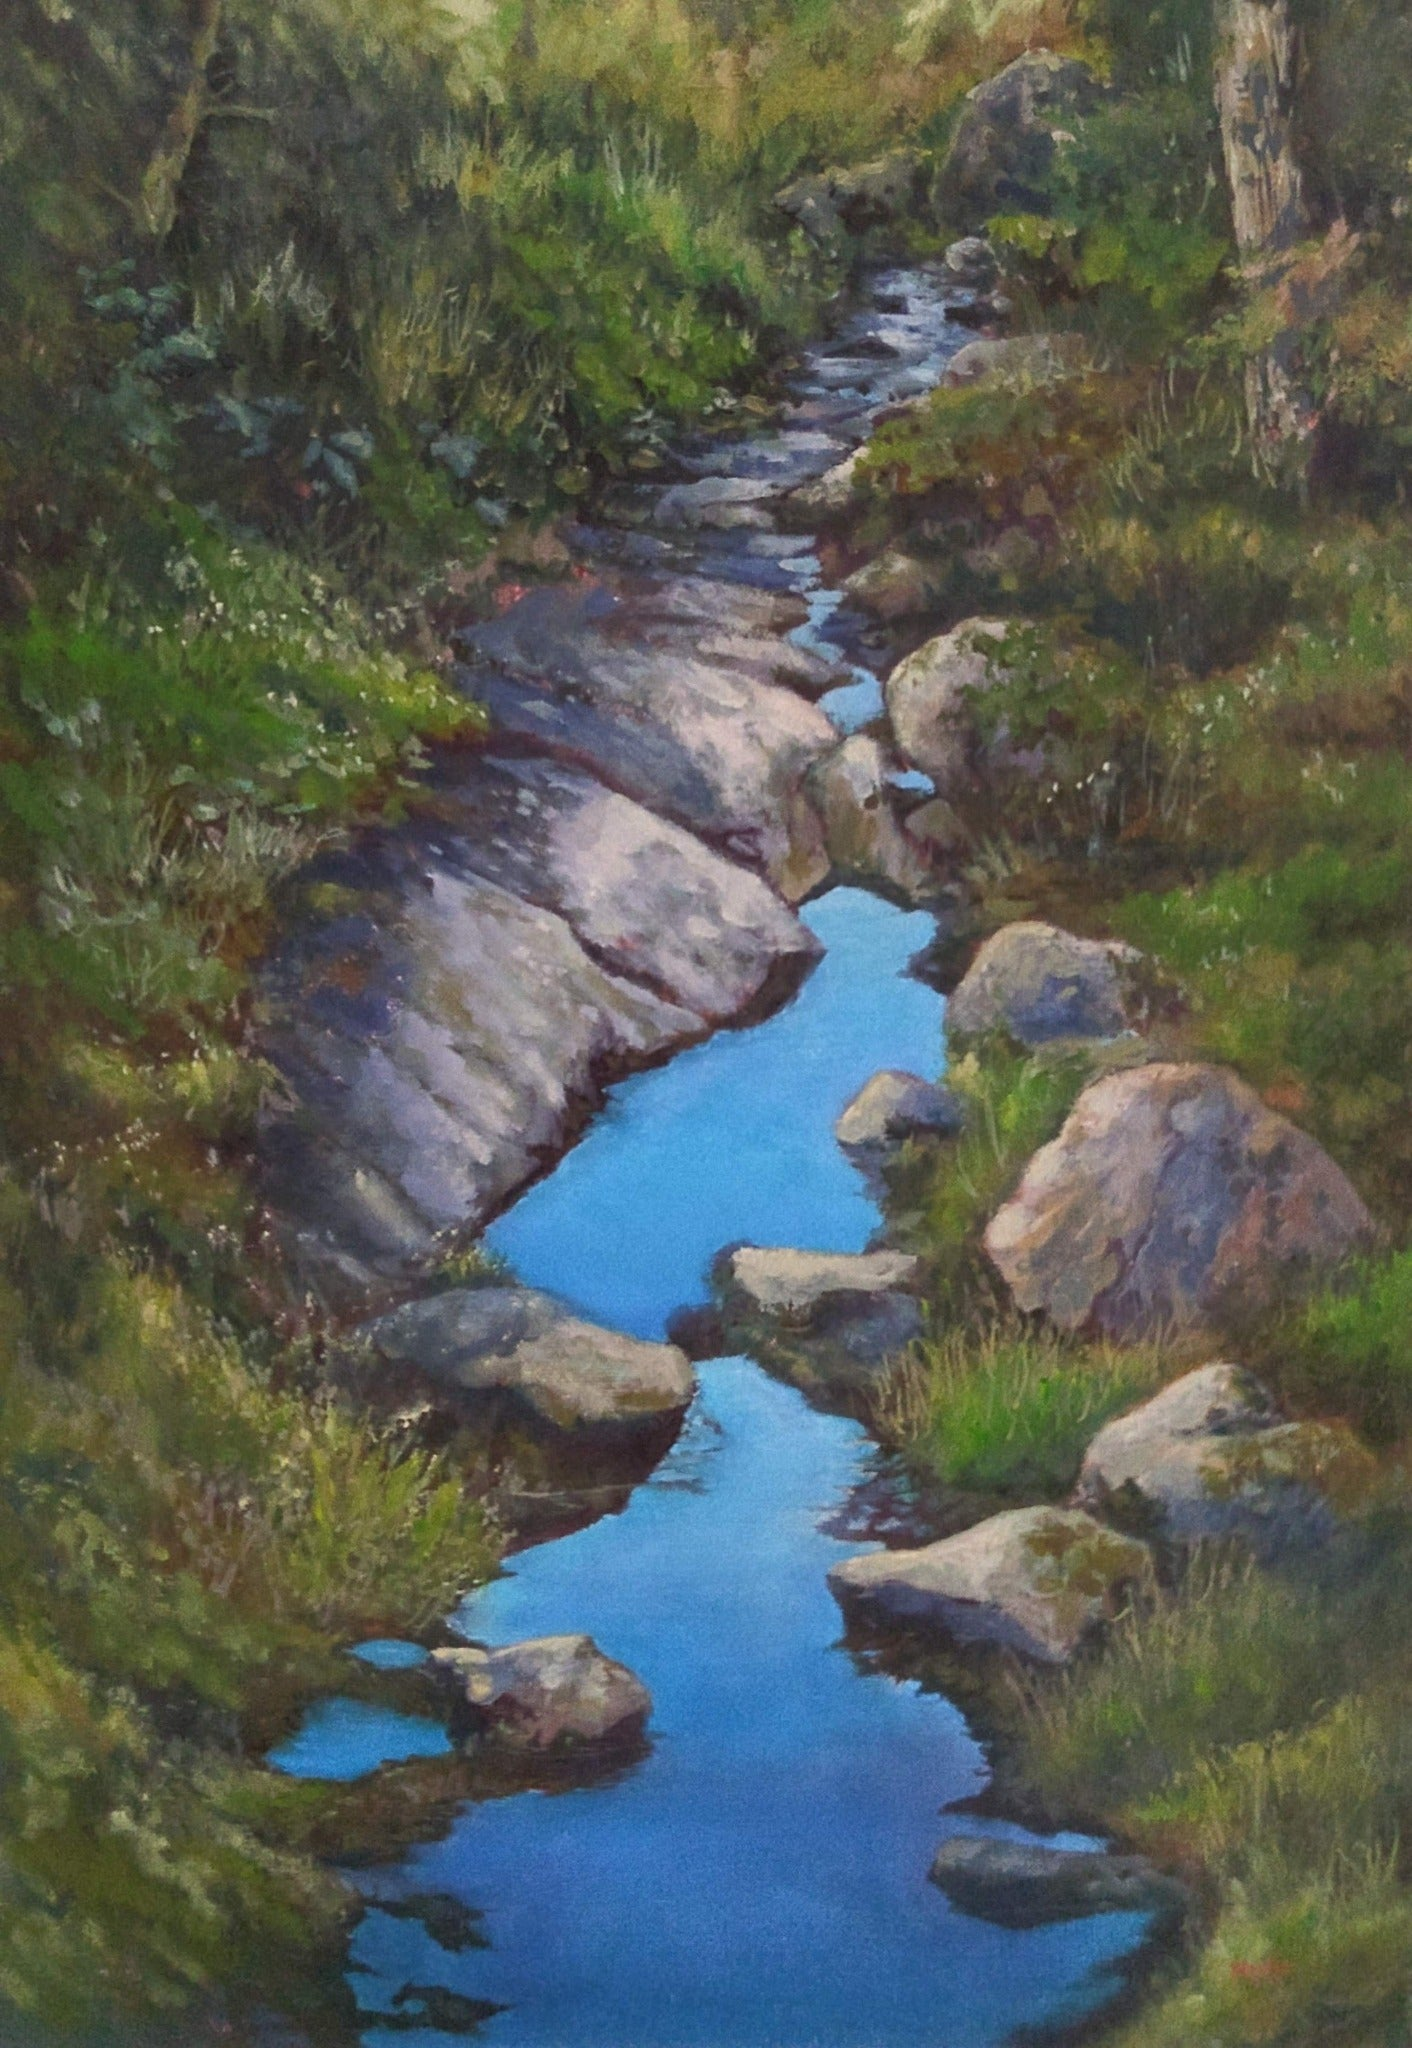 """Sky Along the Trail"" is an 14 by 18 inch oil on canvas painting by Rebecca M. Fullerton, depicting water reflecting blue sky on a mossy, treelined section of the Crawford Path near Mount Pierce in the White Mountain National Forest of New Hampshire."